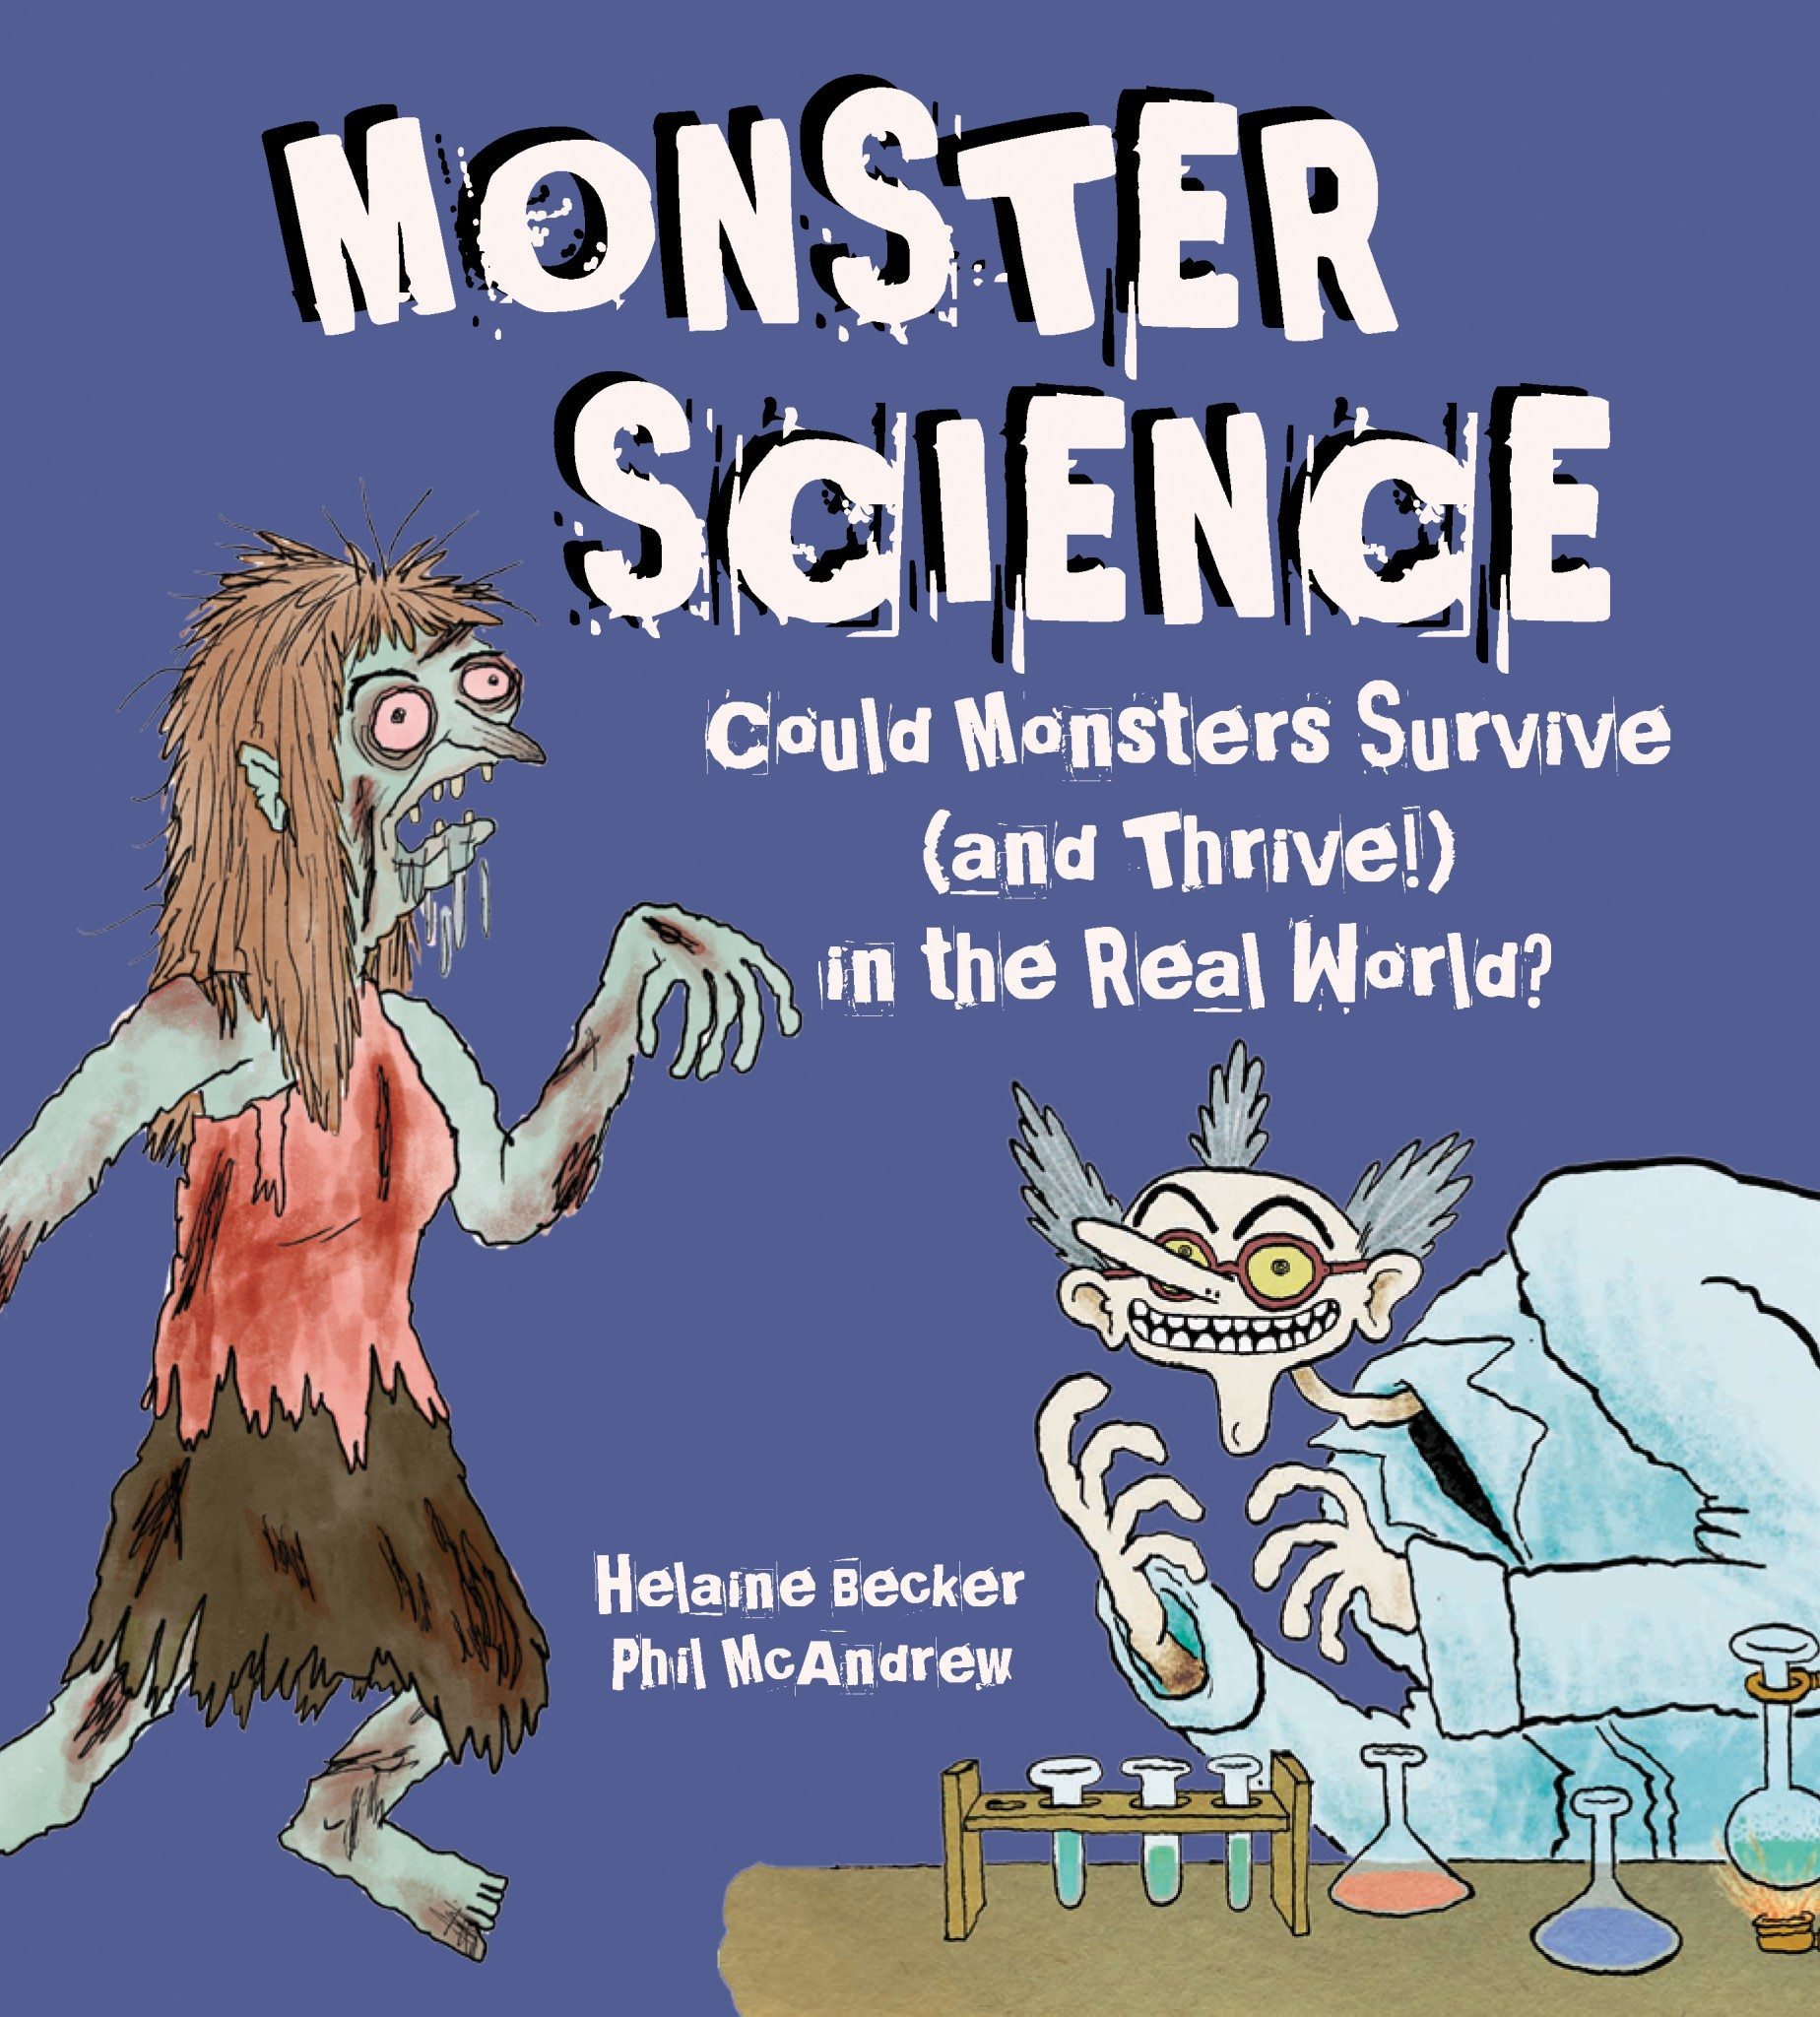 Monster Science Helaine Becker Phil McAndrew